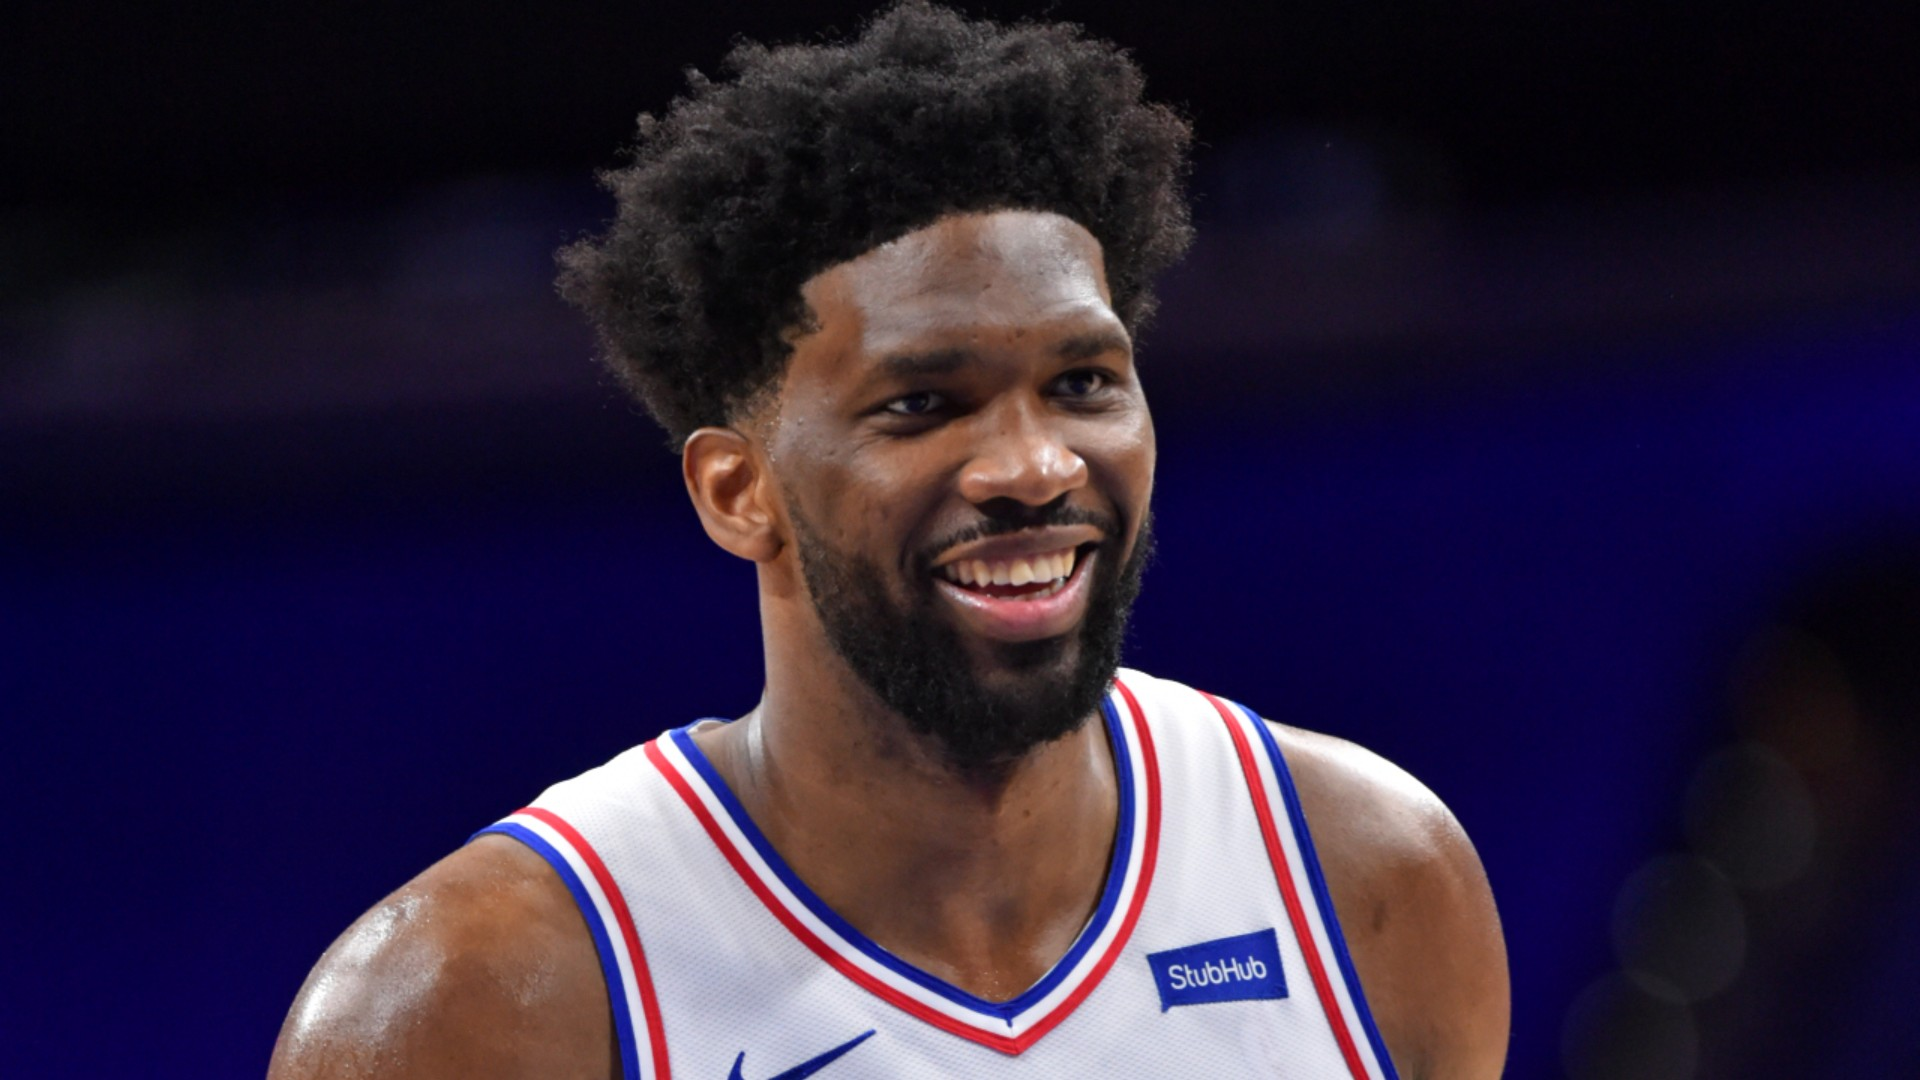 Embiid at MVP level? 'For sure', says 76ers team-mate Harris